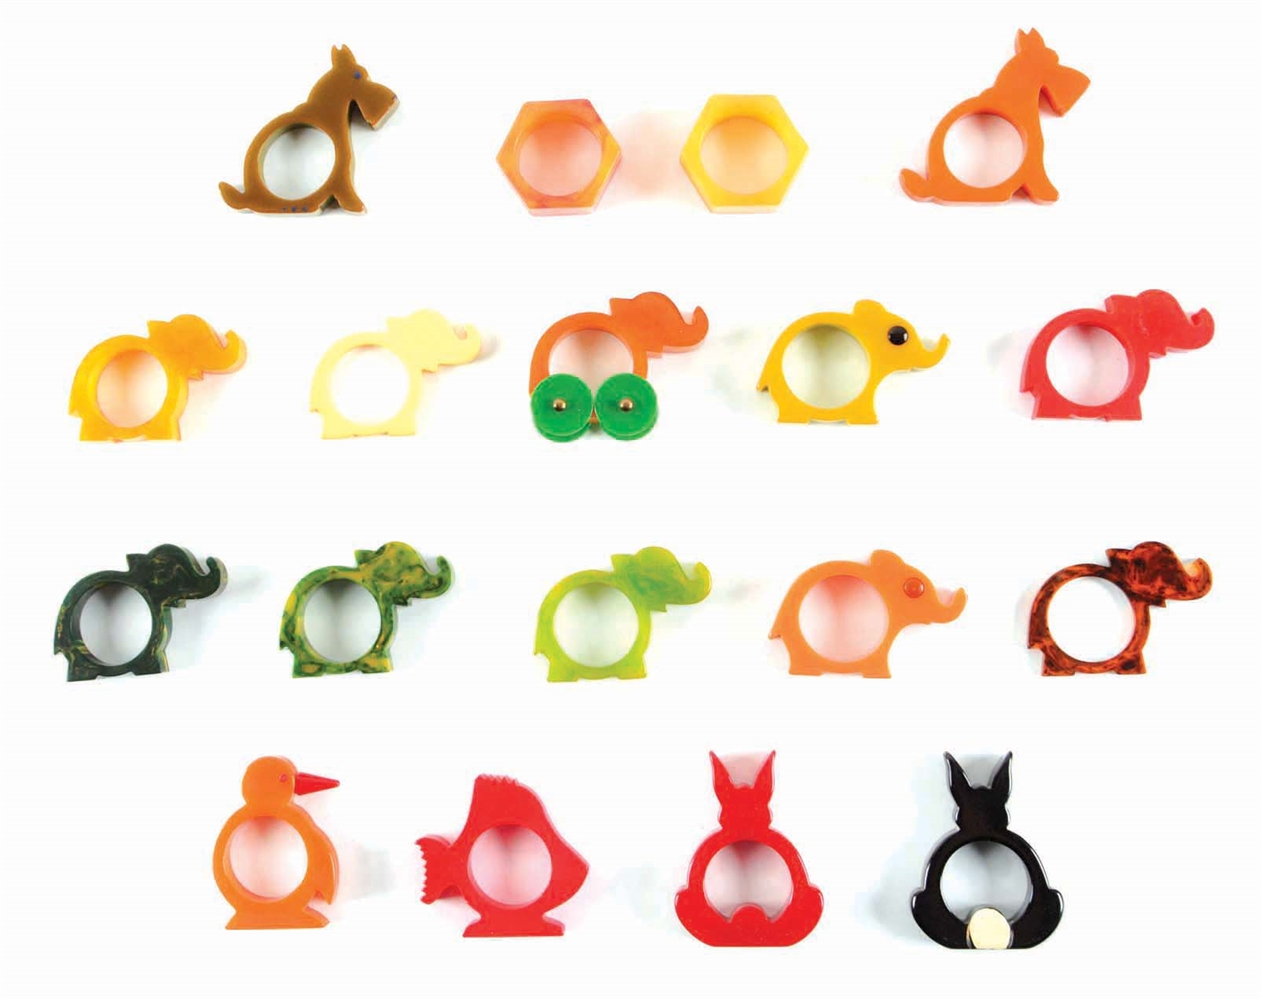 LOT OF 18: BAKELITE ANIMAL FIGURE NAPKIN RINGS.